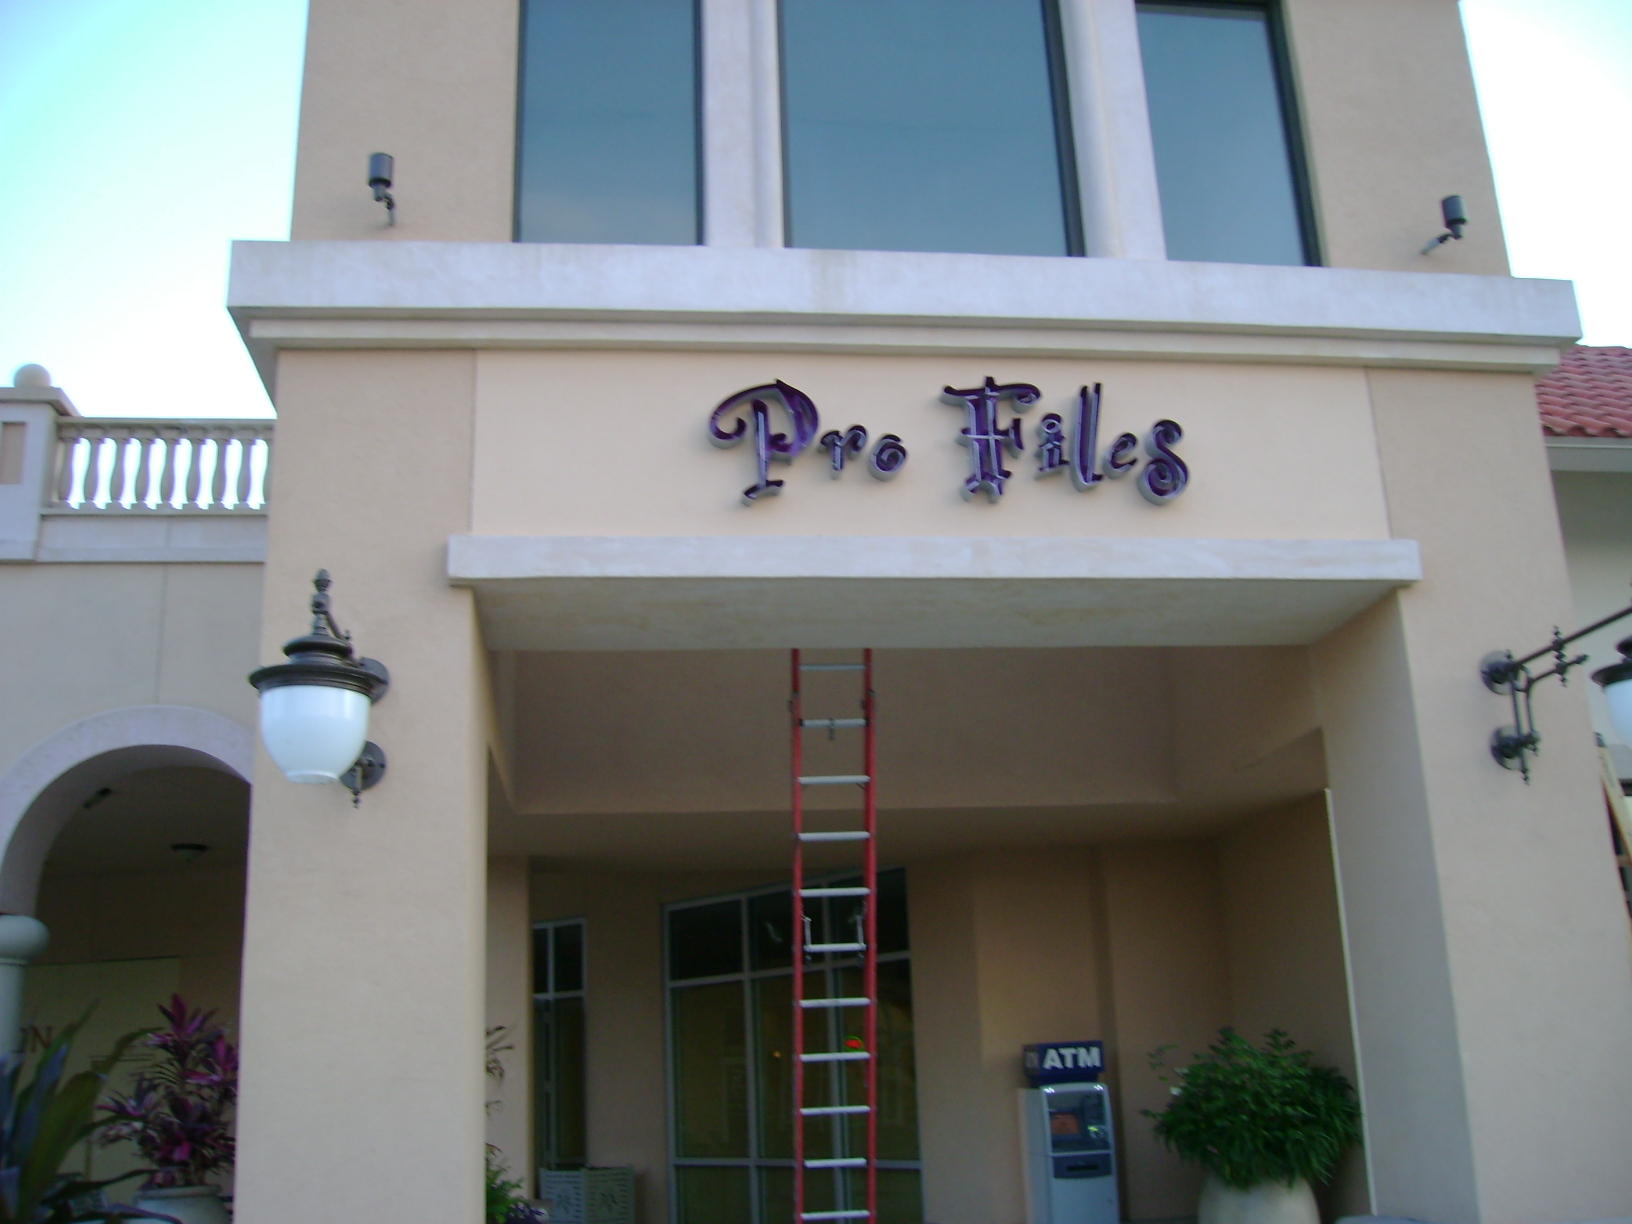 Pro Files, Estero, FL by Lee Designs